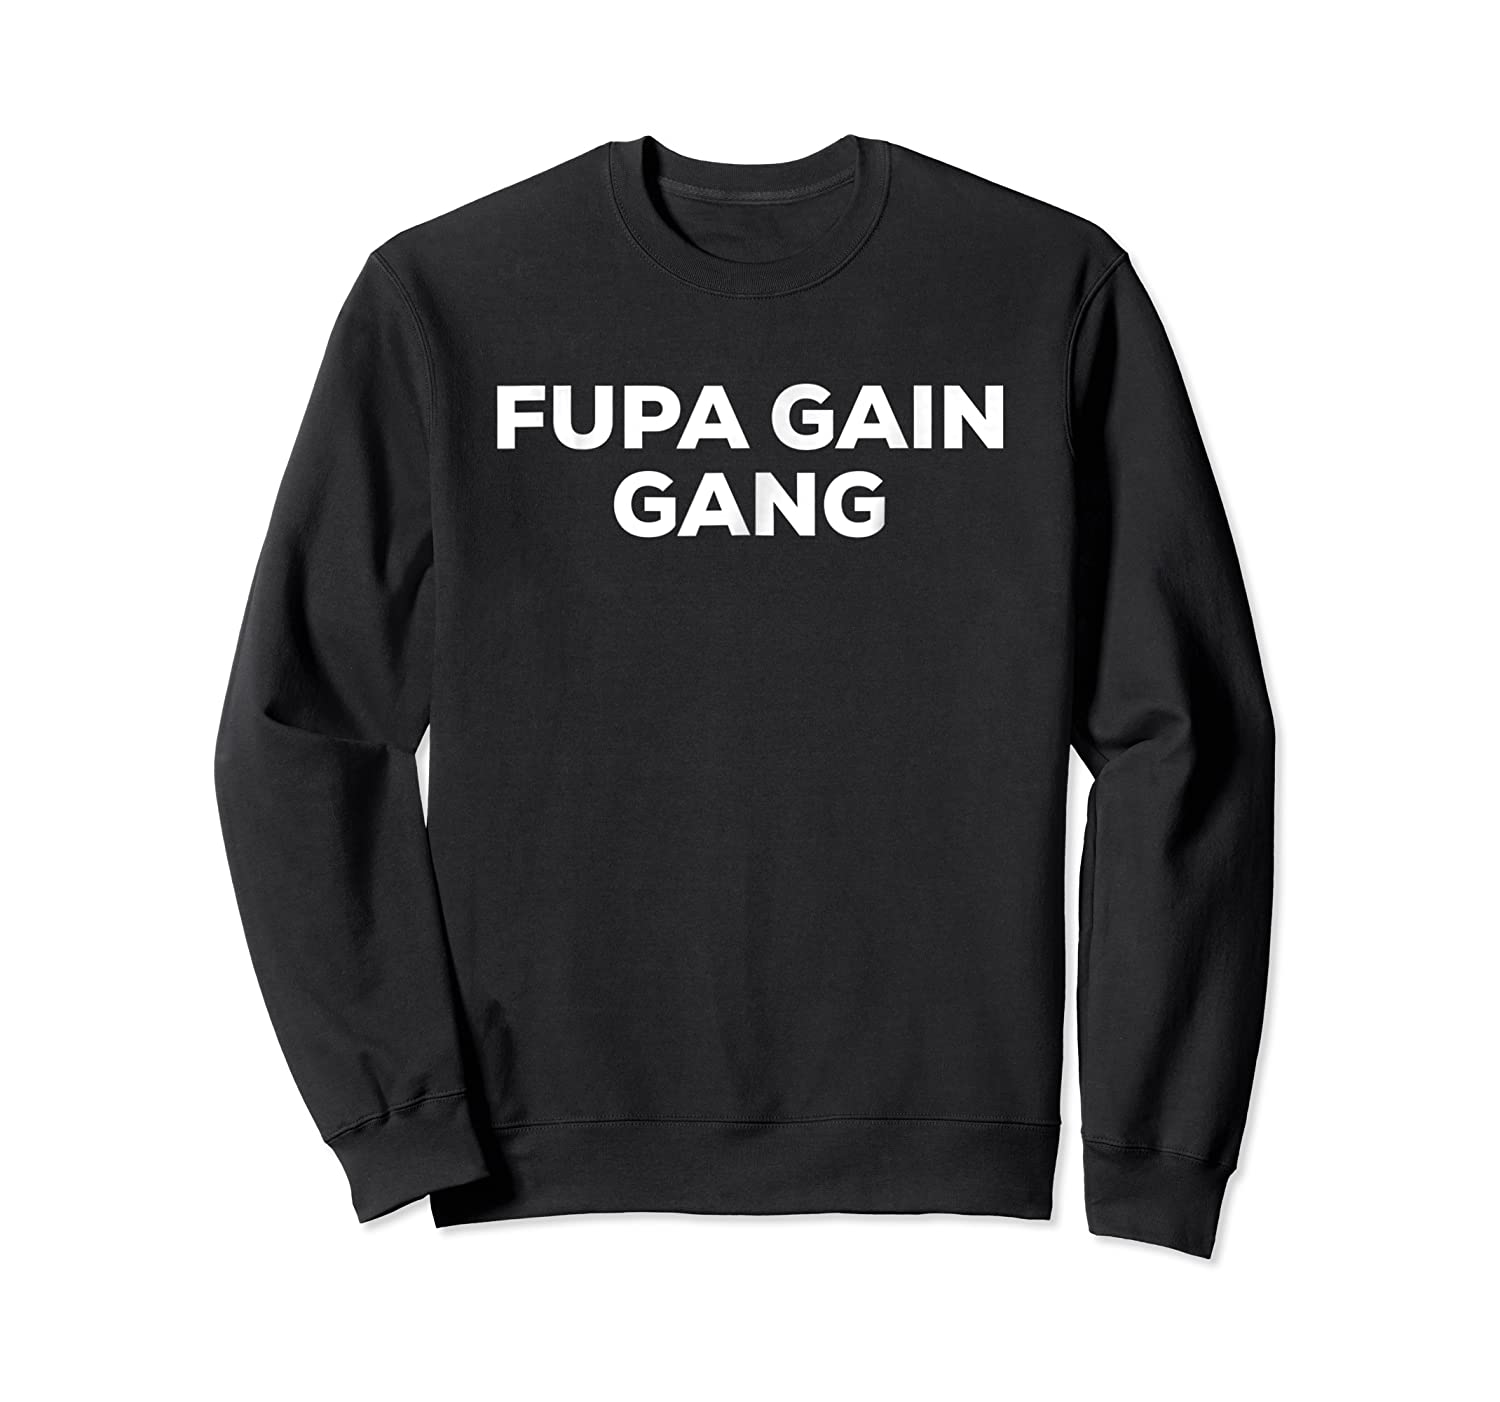 Fupa Gain Gang Shirt For Belly Fat Fans Tee Crewneck Sweater